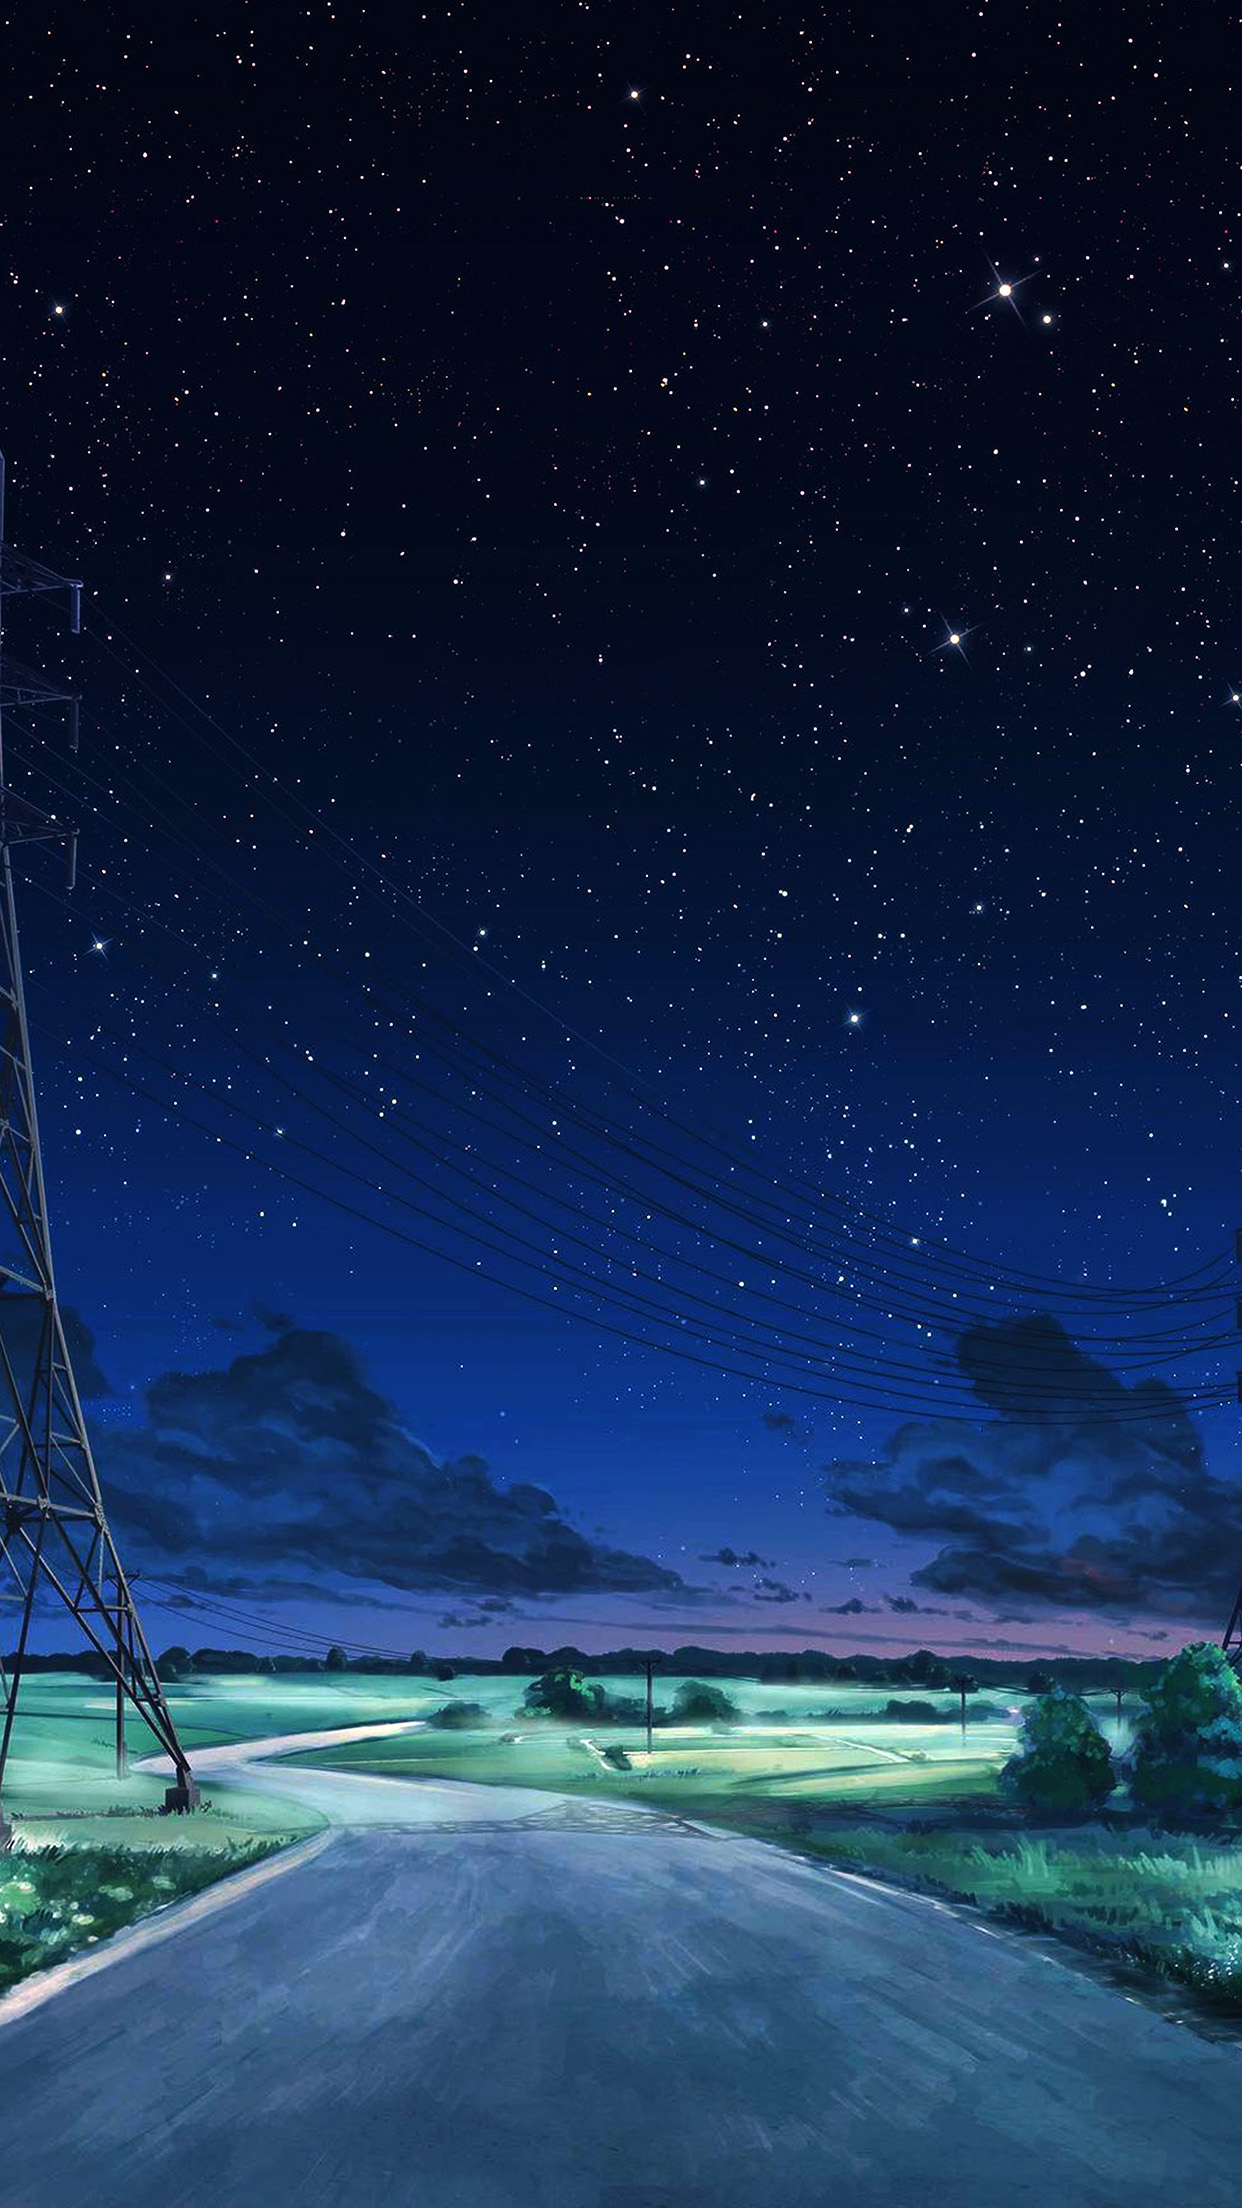 Animated Hd Wallpapers For Laptop Aw16 Arseniy Chebynkin Night Sky Star Blue Illustration